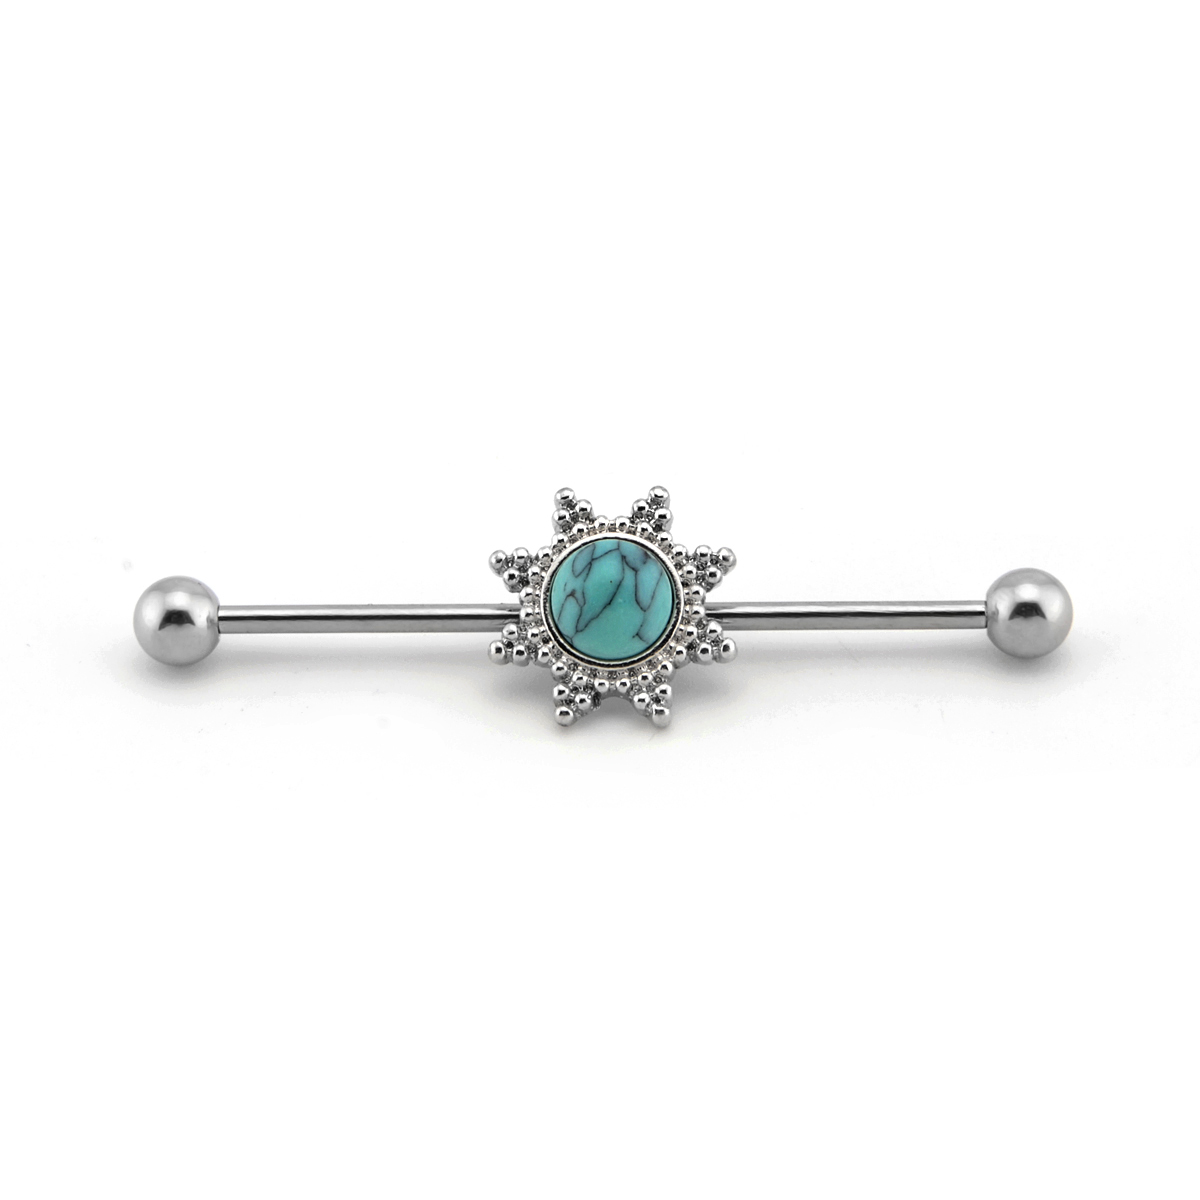 Turquoise Industrial Barbell Scaffold Ear piercing ring Jewelry